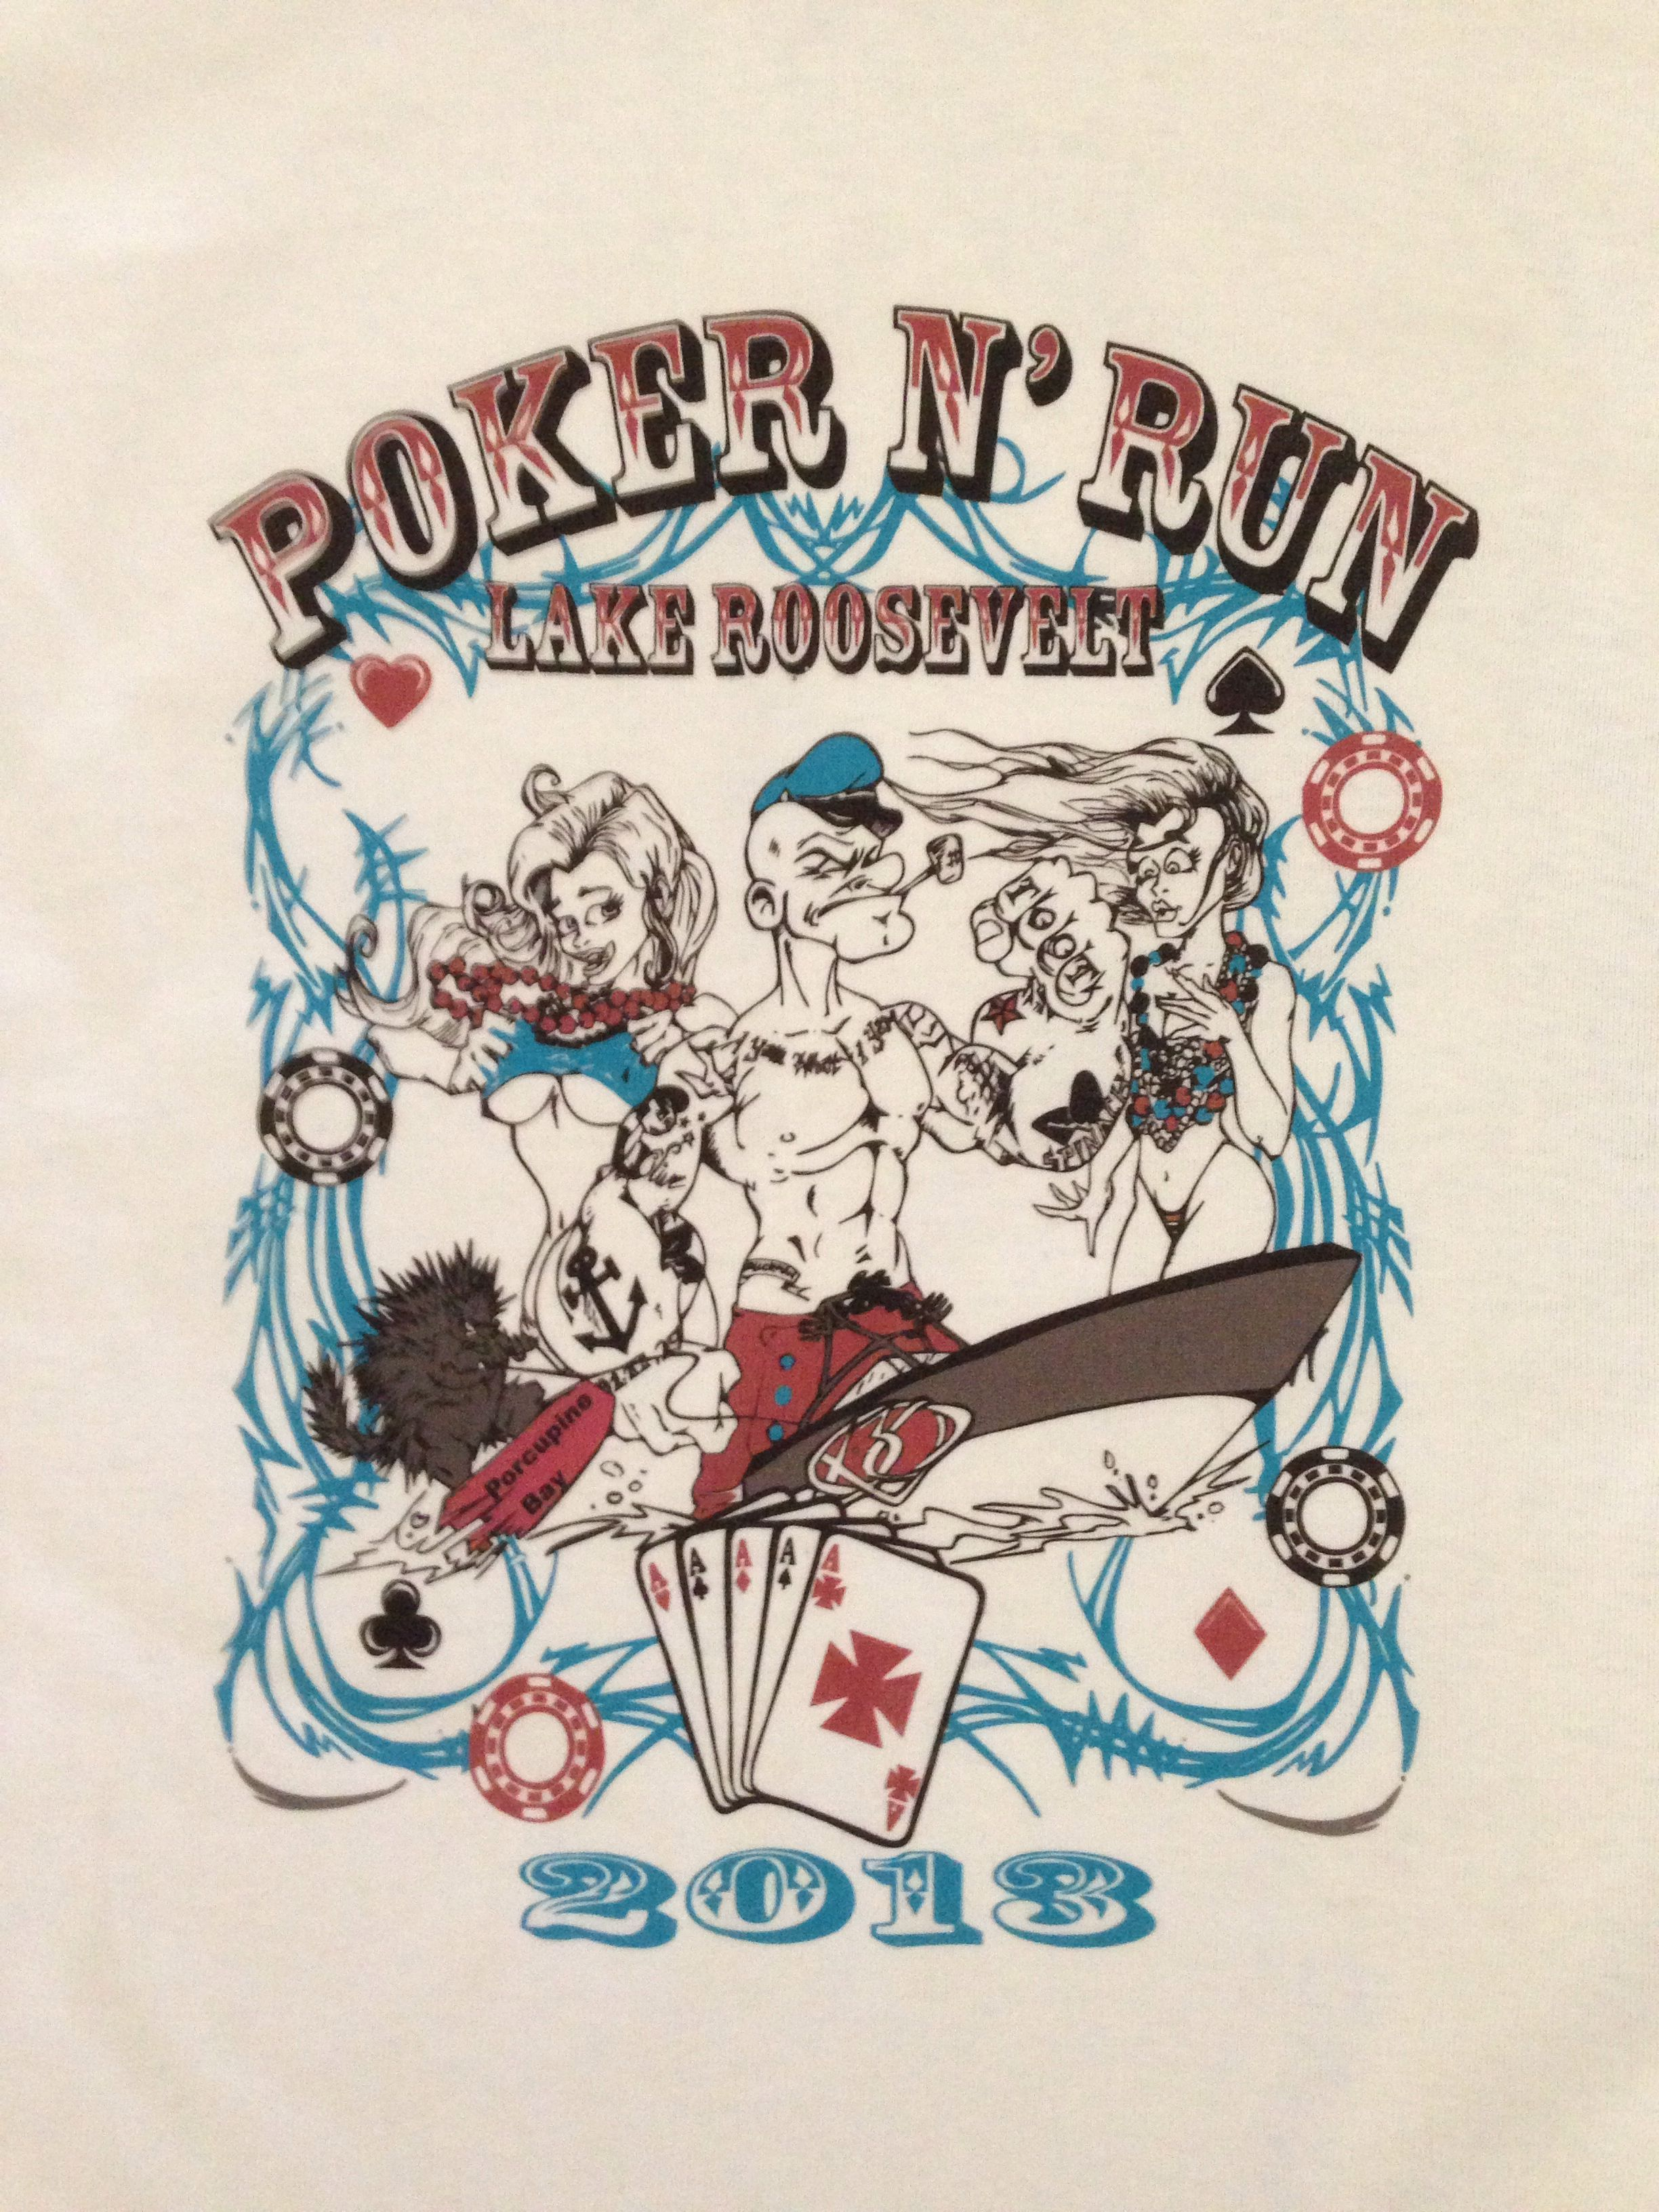 2013 Poker Run Tshirt design. Turned out pretty good. Next years will be even better.